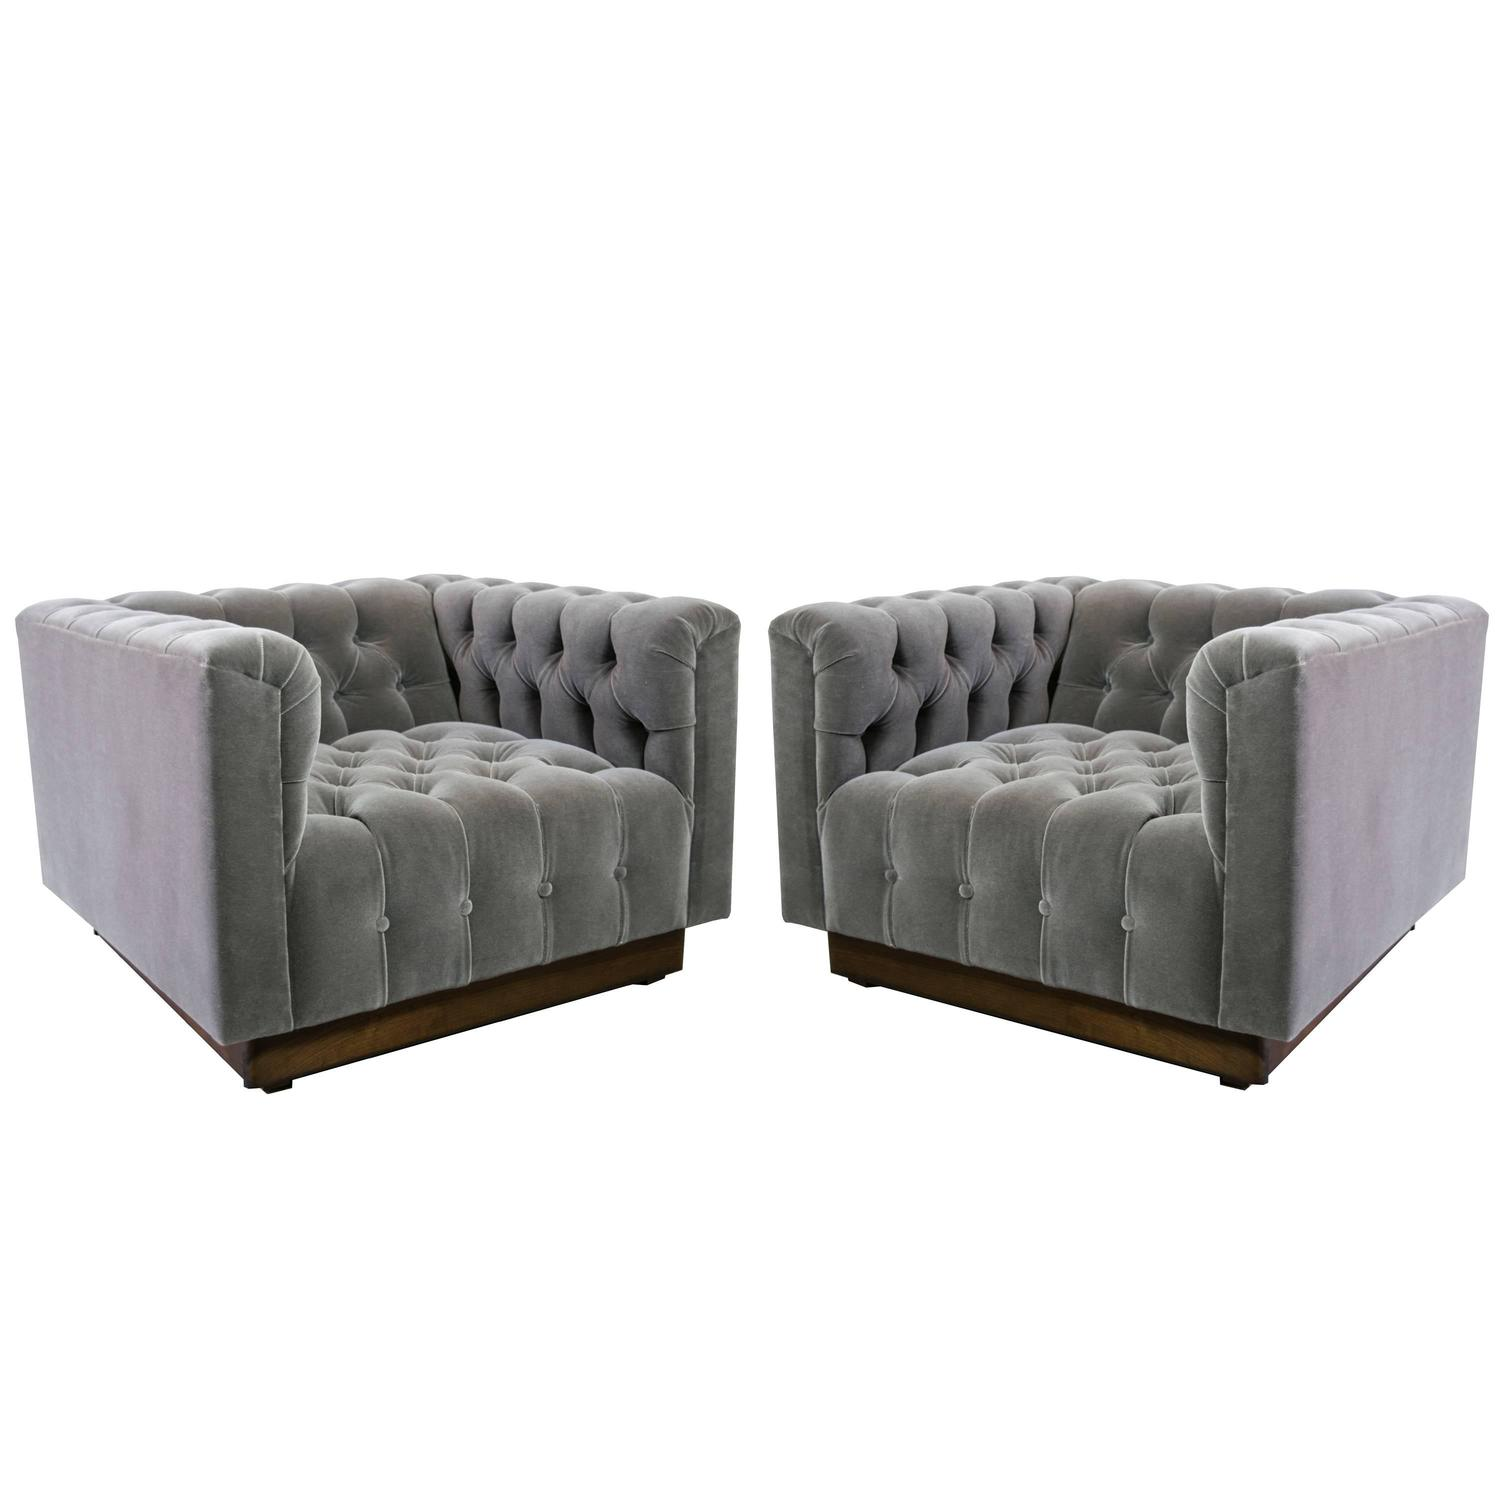 Gray Oversized Chair Oversized Milo Baughman Tufted Lounge Chairs In Smoky Gray